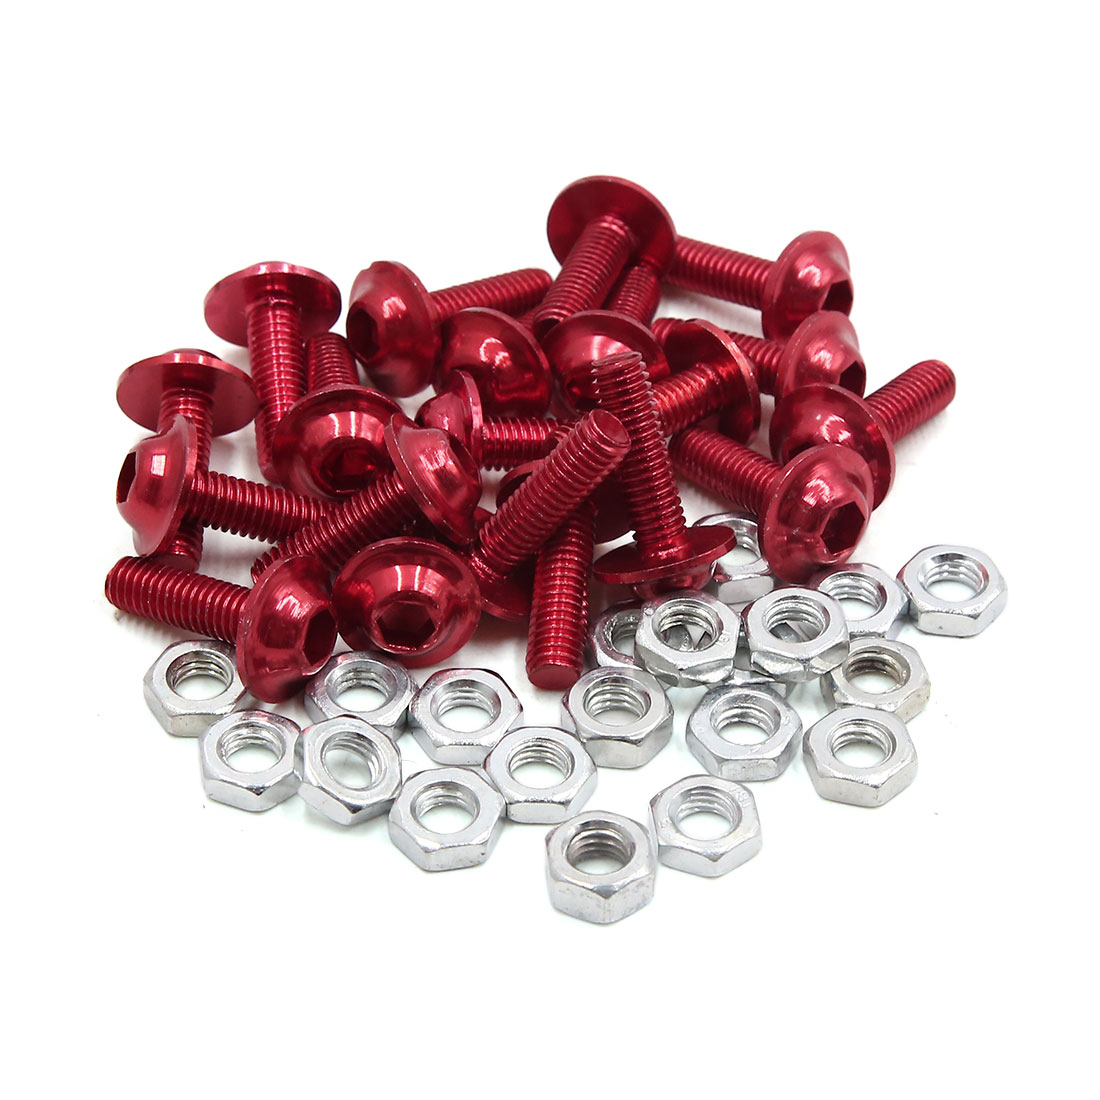 20pcs M6 Red Aluminum Alloy Hex Socket Head Motorcycle Fairing Bolts Screws Nuts